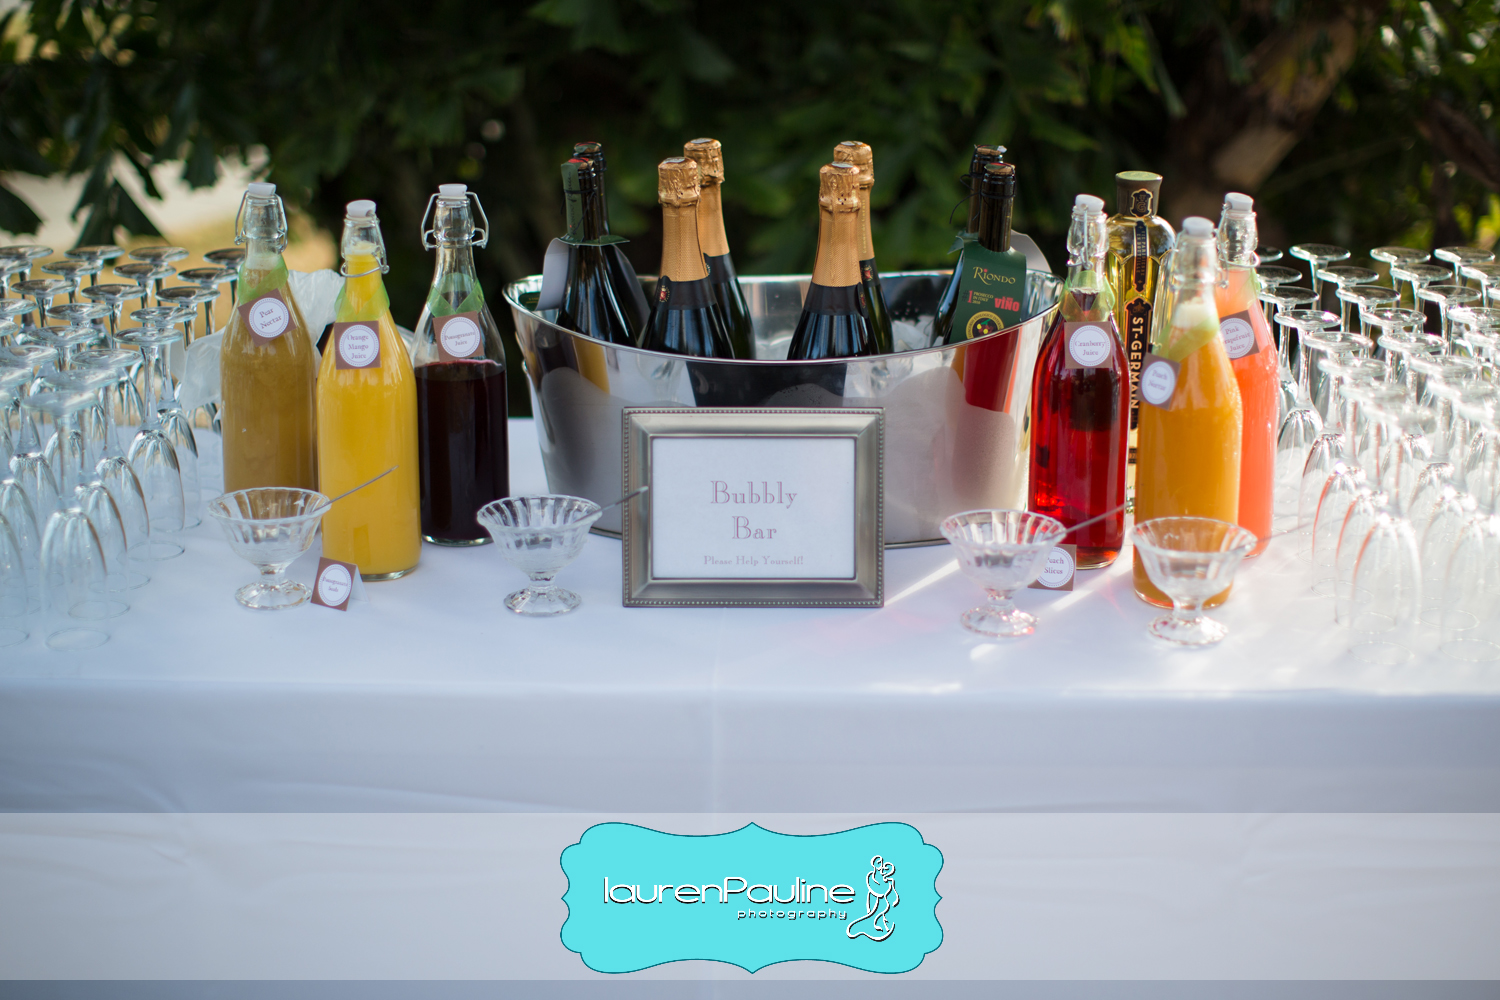 Guests enjoyed a Bubbly Bar with various fruit juices topped with champagne